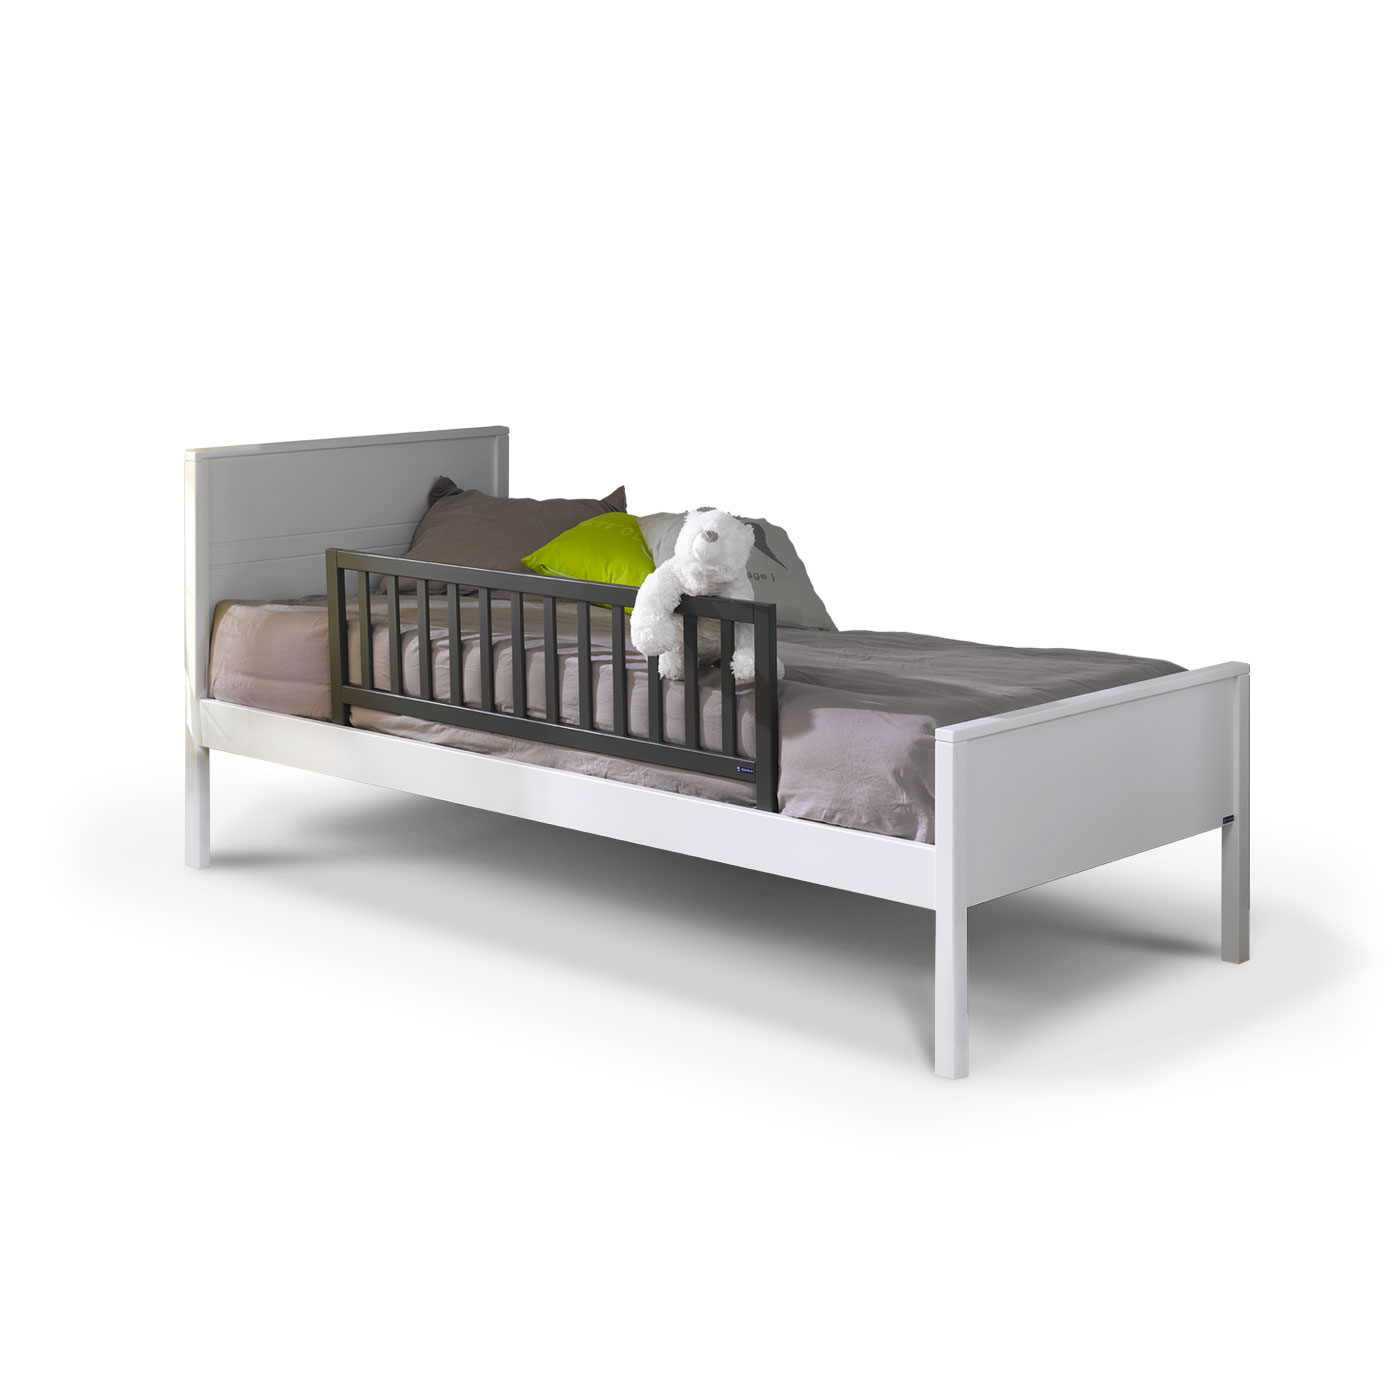 barri re de lit enfant 120 cm gris anthracite idkid 39 s. Black Bedroom Furniture Sets. Home Design Ideas